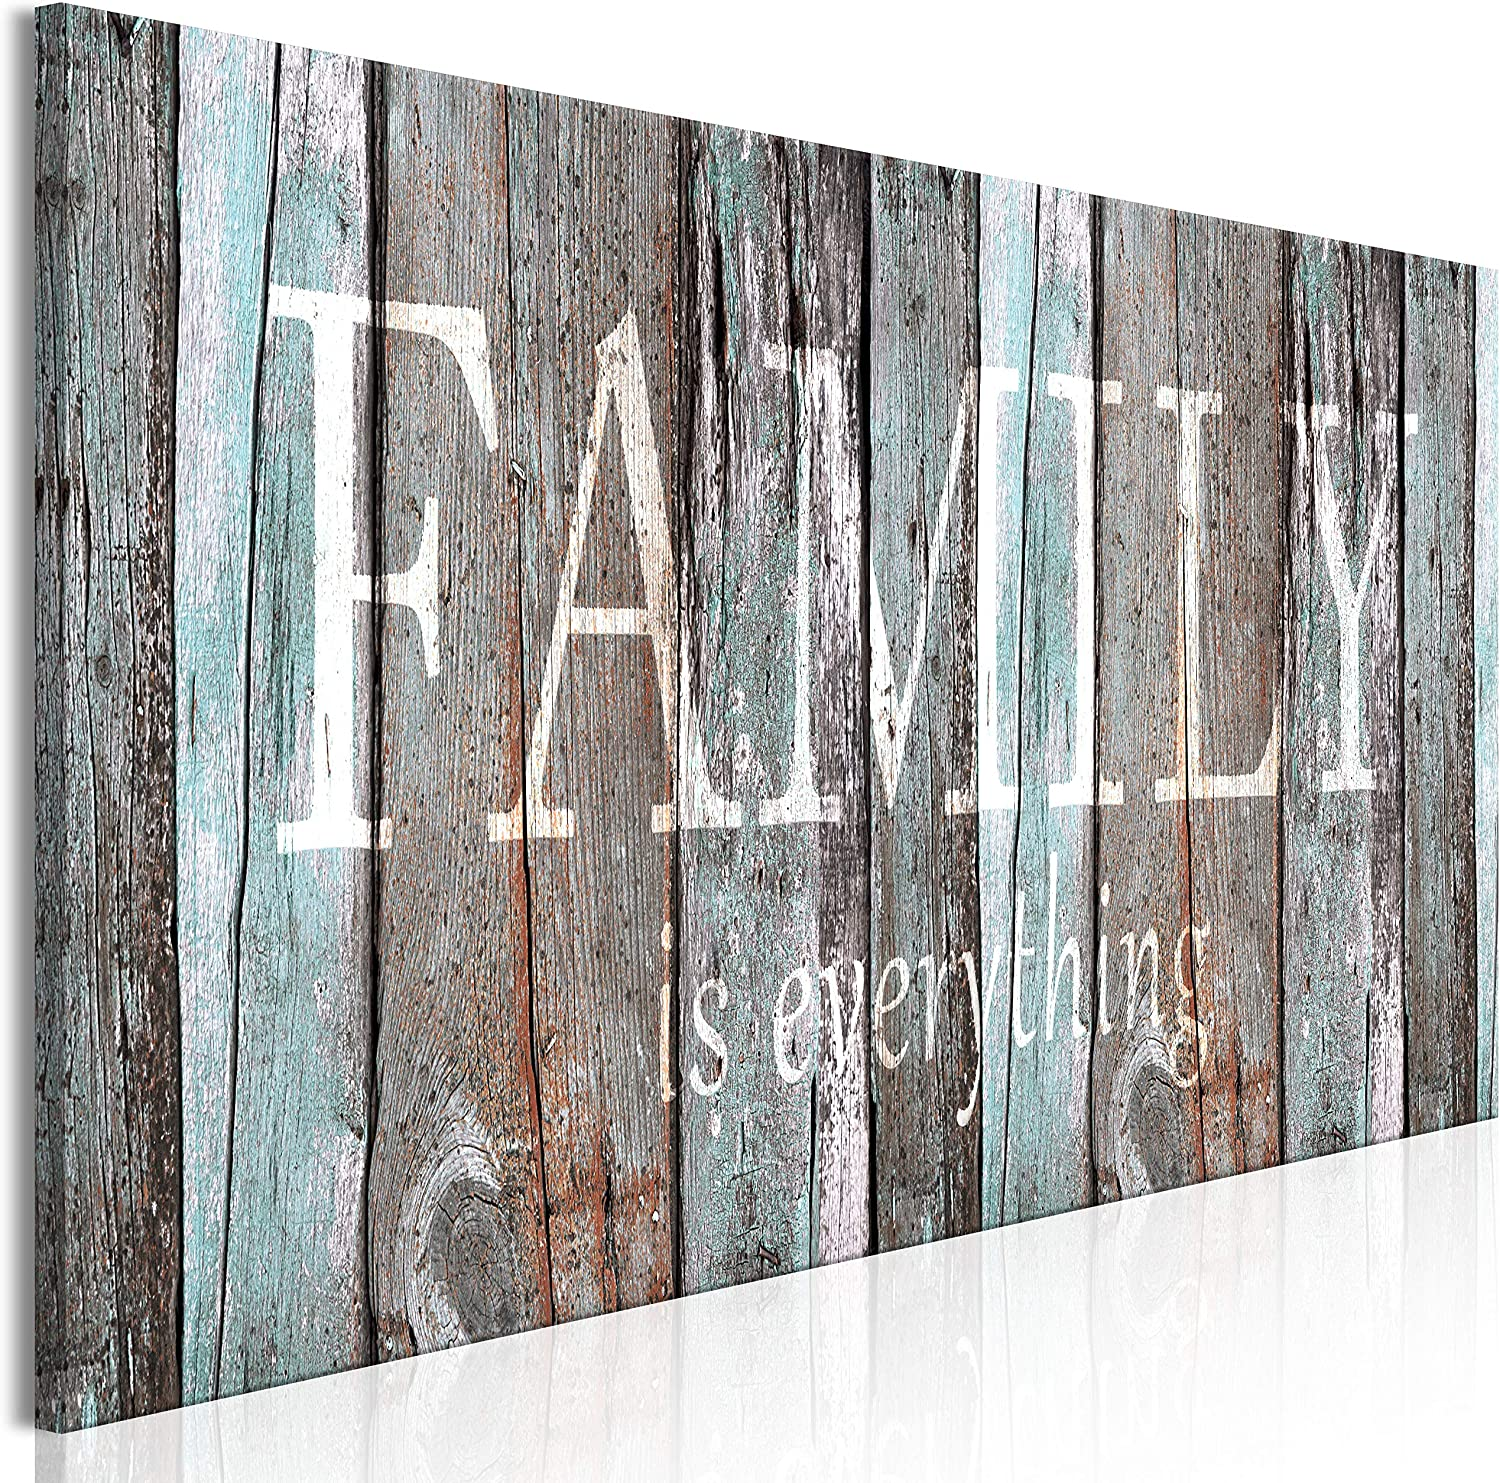 Amazon Com Artgeist Canvas Wall Art Print Quotes Family 120x40 Cm 47 2 X15 7 1 Pcs Home Decor Framed Stretched Picture Photo Painting Artwork Image Family House Faux Wood M A 0956 B A Posters Prints